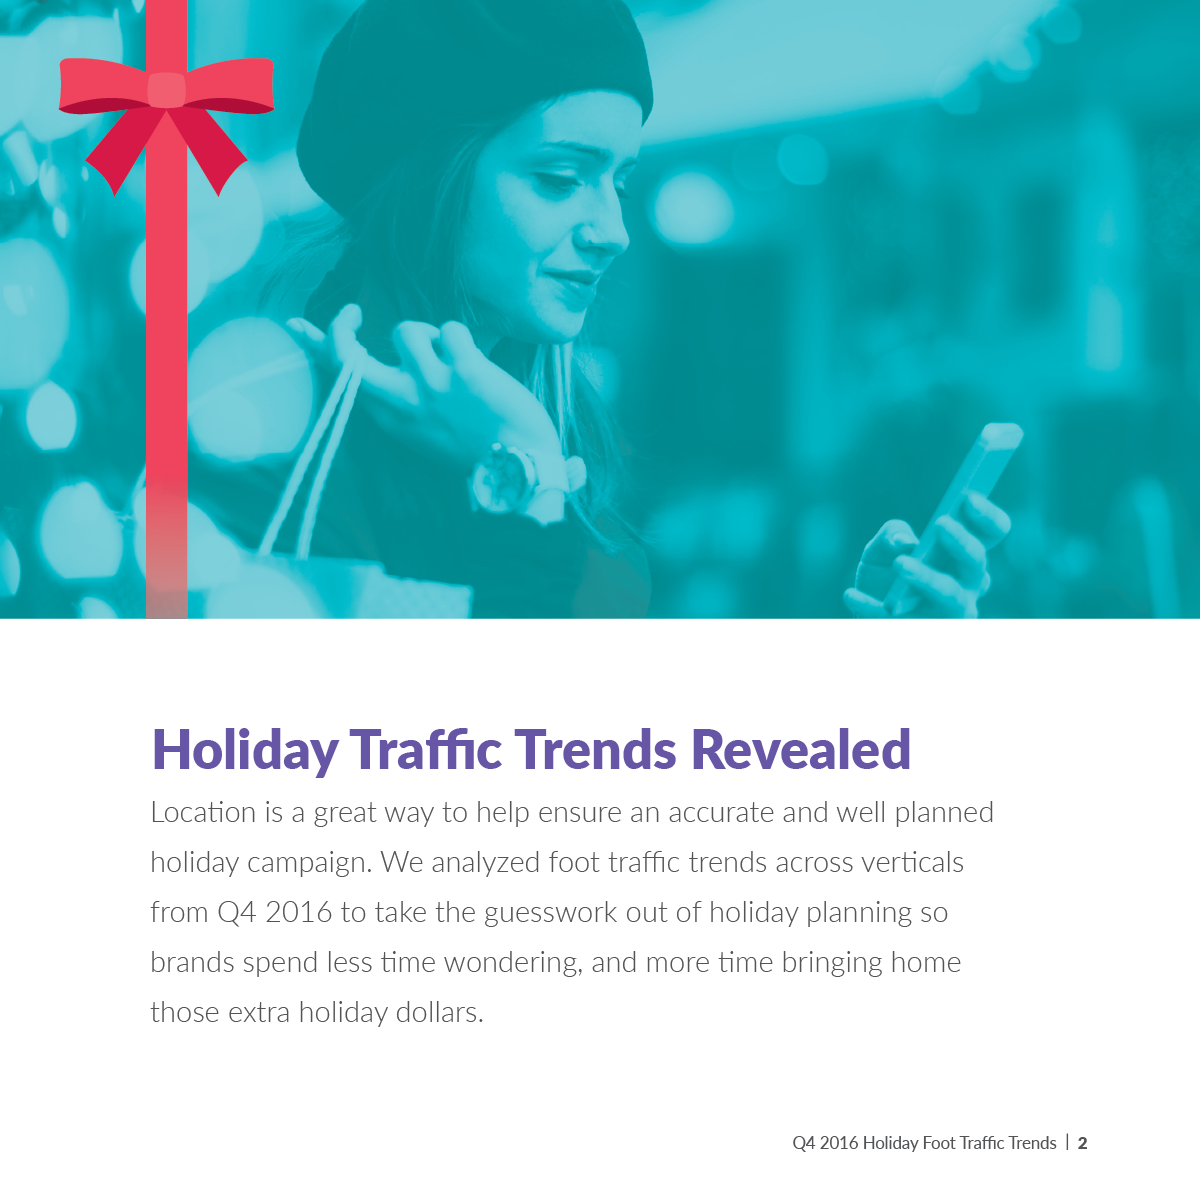 Holiday Traffic Trends Revealed